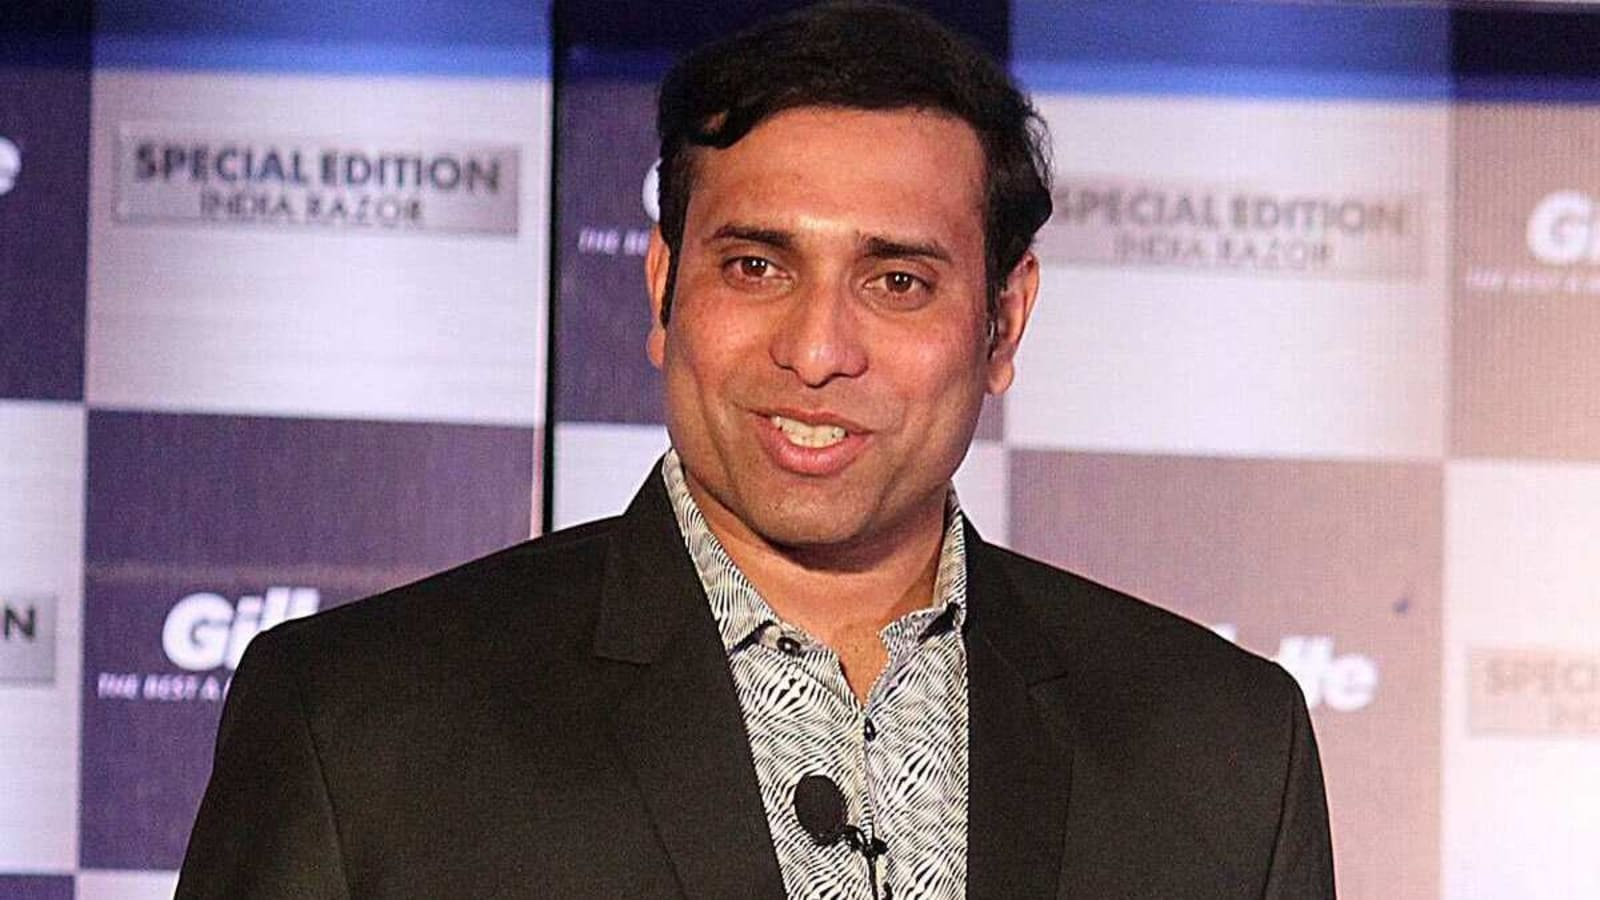 'When playing the IPL, he is the main batsman': VVS Laxman feels India player is an 'exceptional T20 batsman'